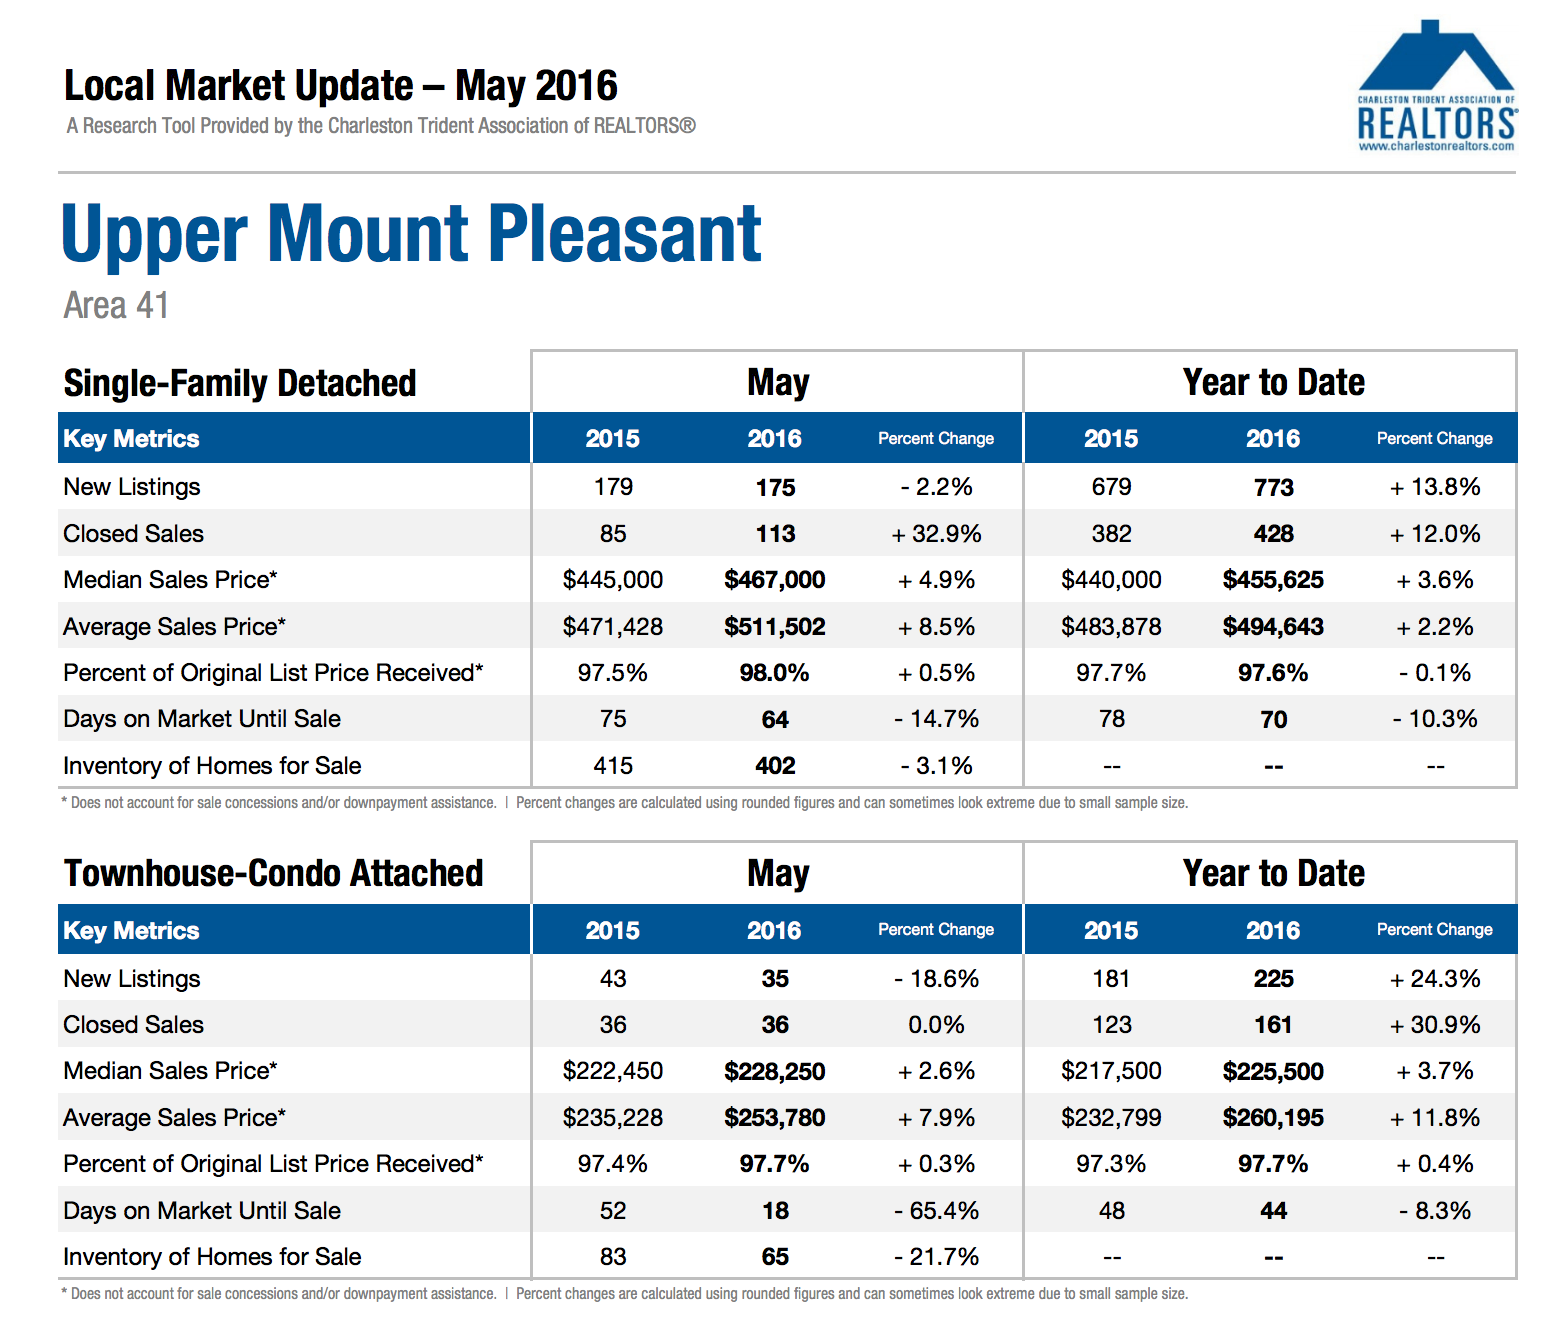 Upper Mount Pleasant Market Update May 2016